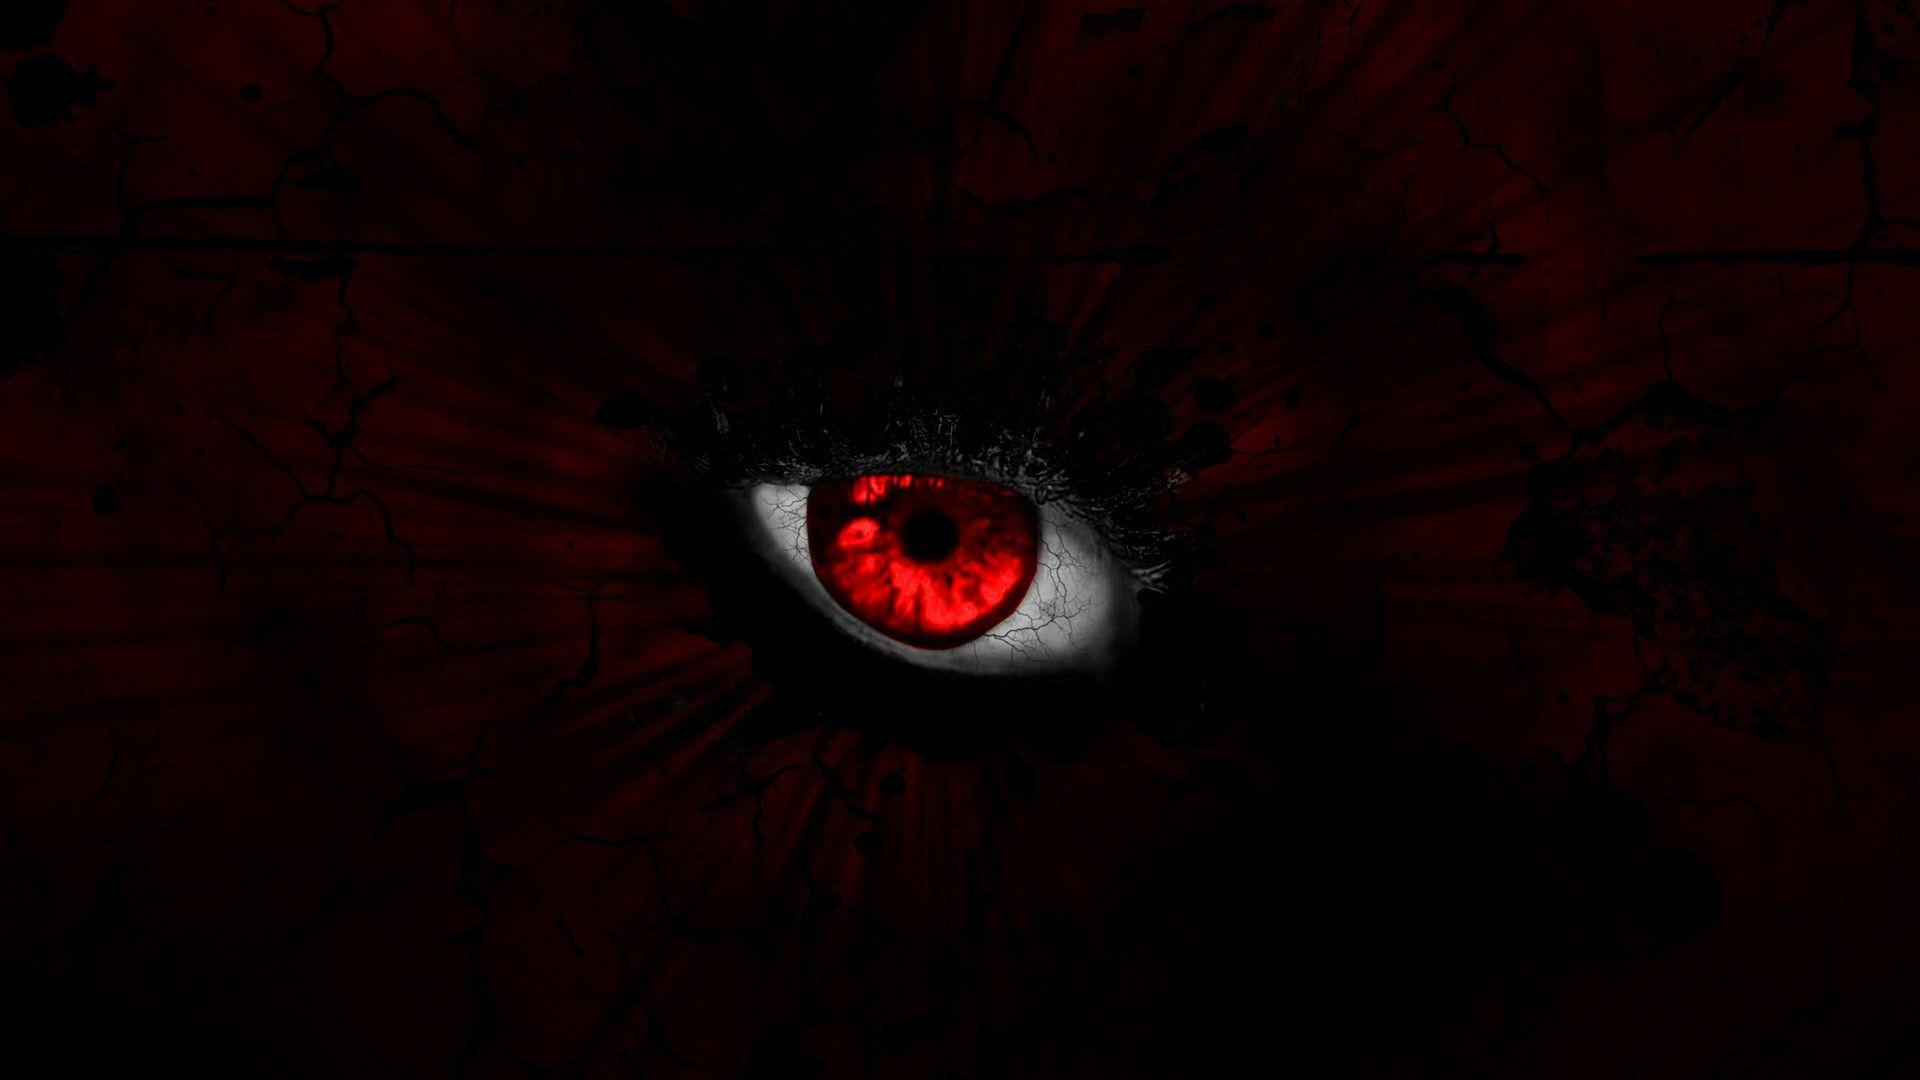 Anime Eyes Wallpapers - Wallpaper Cave